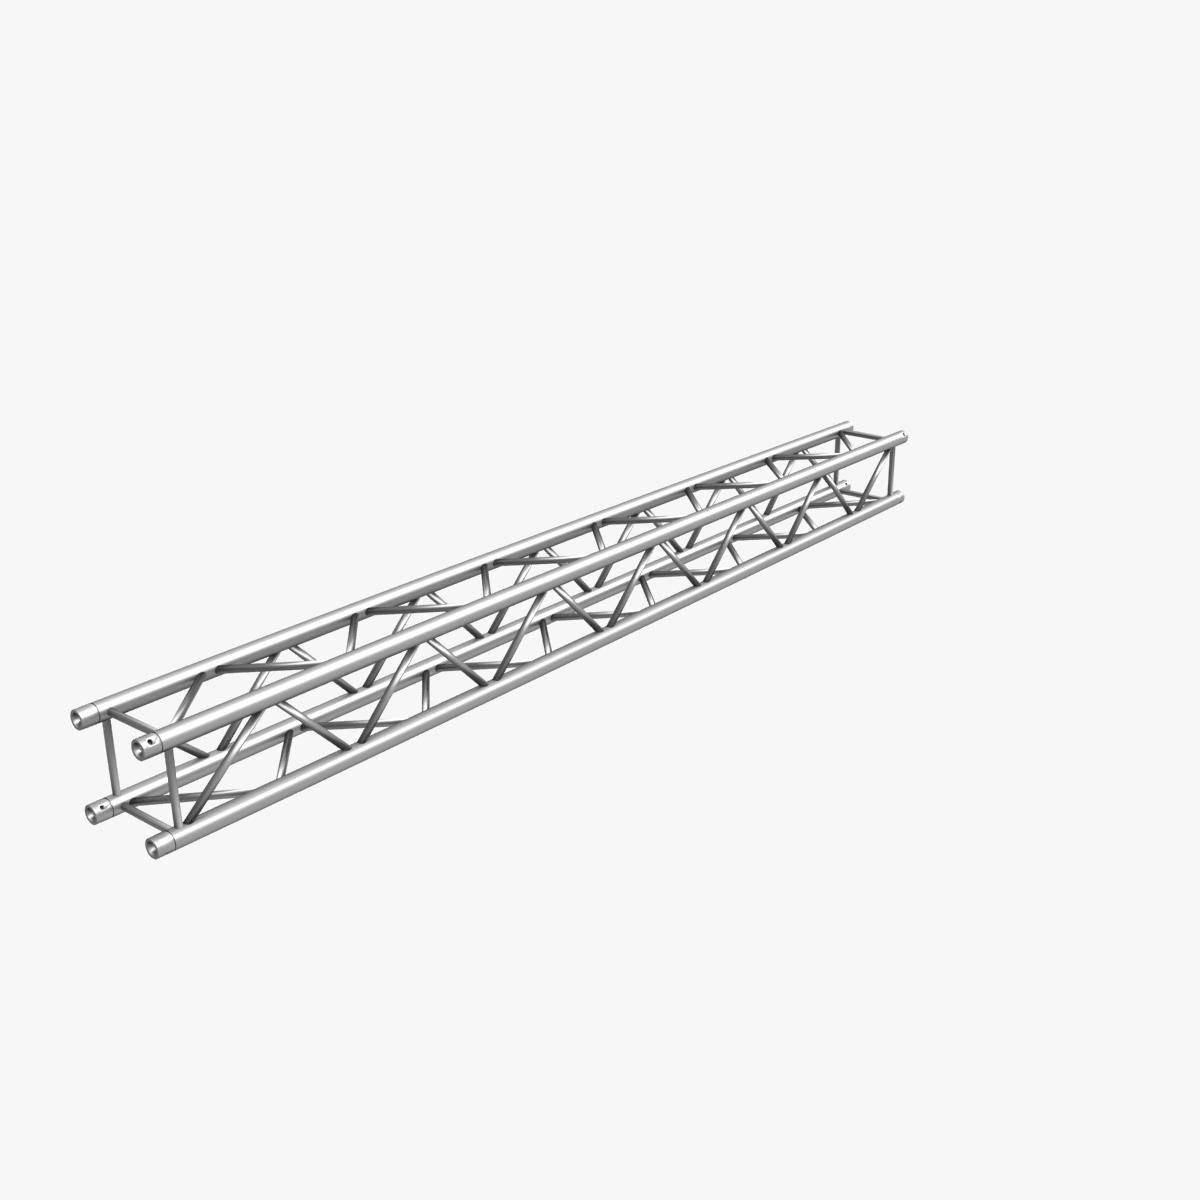 square truss standard (collection 24 modular) 3d model 3ds max dxf fbx c4d dae  texture obj 216337